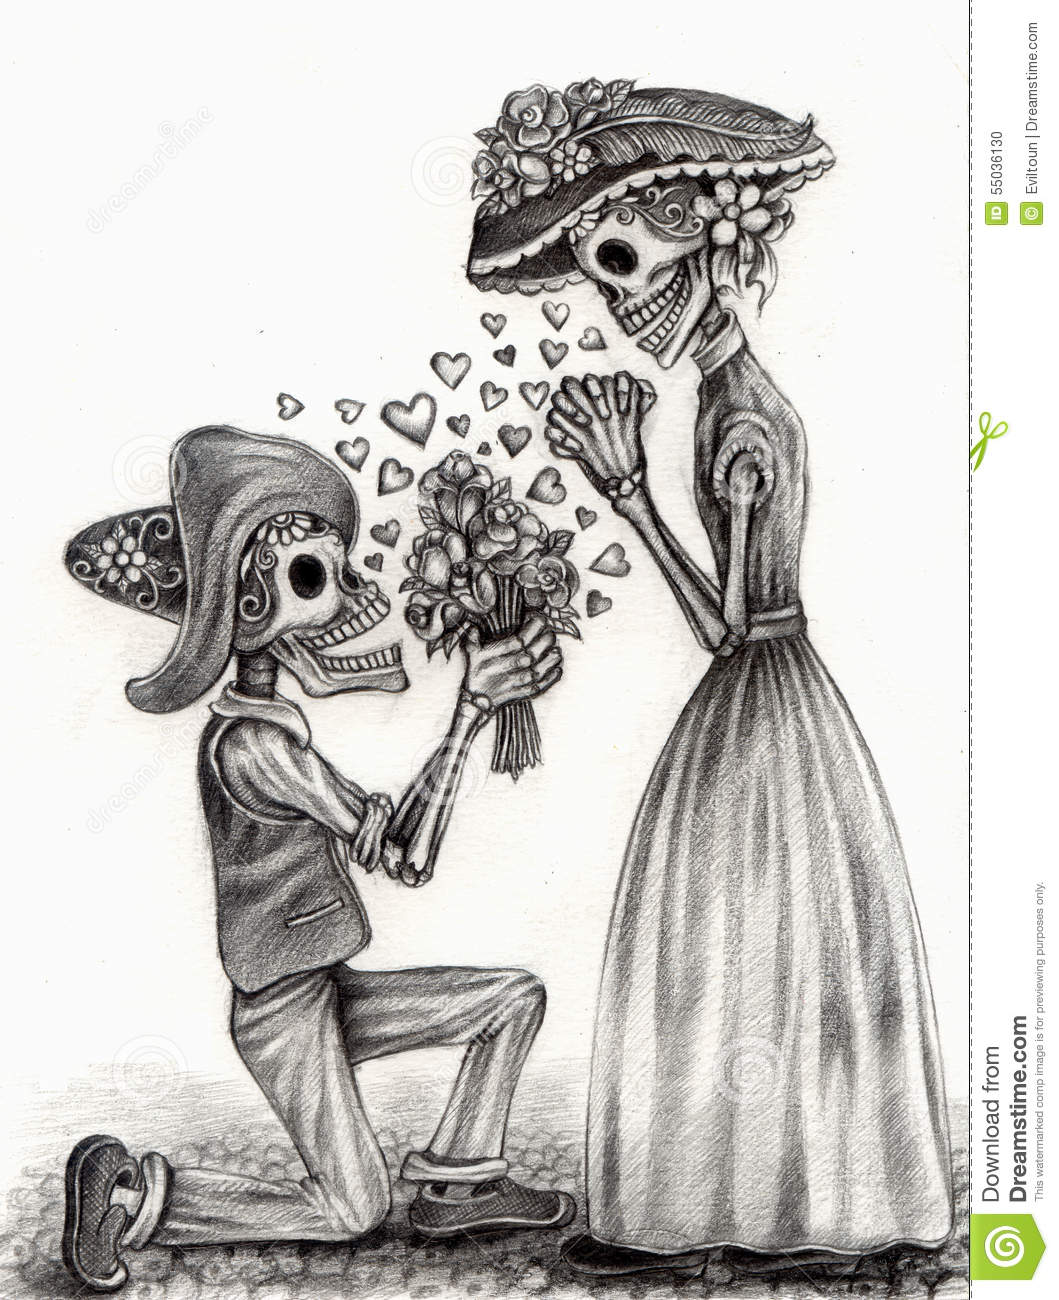 Art design men and women skull in love day of the dead festival hand pencil drawing on paper